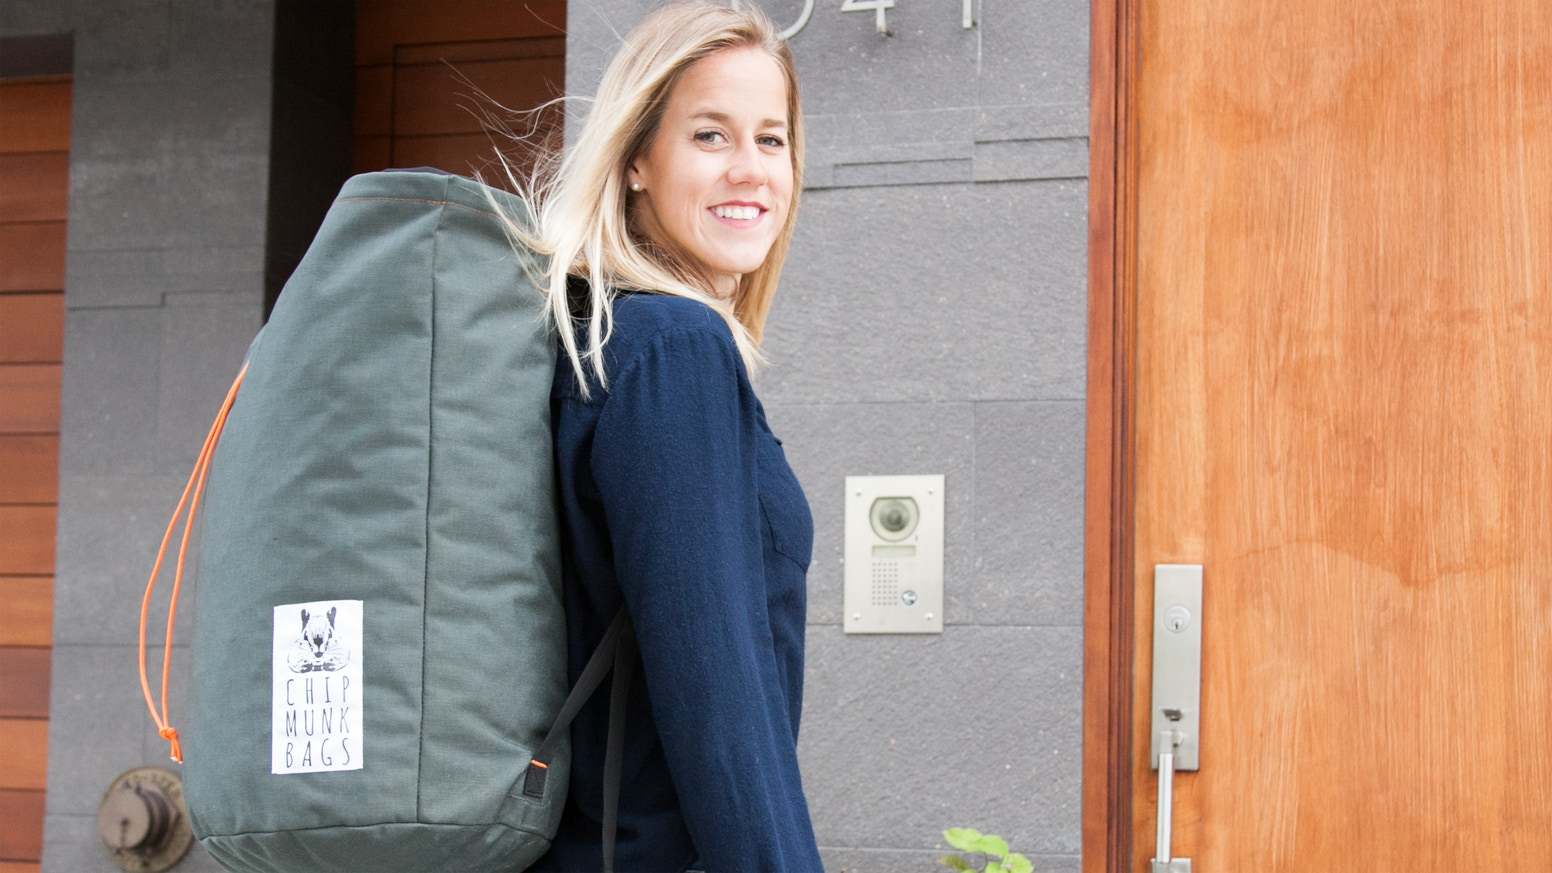 Laundry doesn't have to stink. ChipmunkBags is ending the laundry transportation struggle, once and for all.